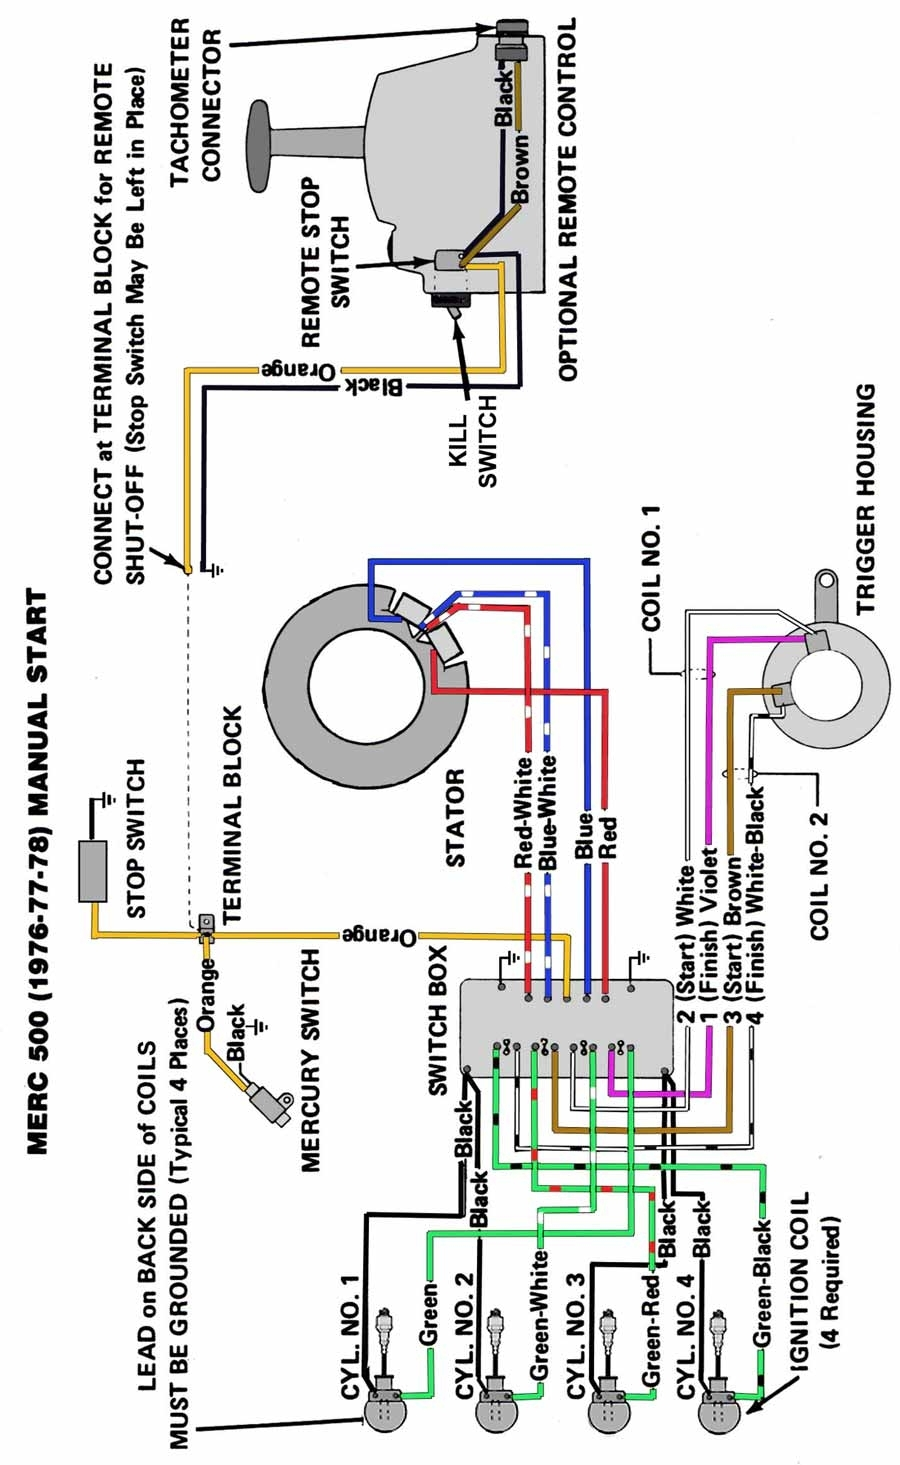 85 Hp Evinrude Wiring Diagram johnson outboard fuse location ...  Hp Johnson Outboard Wiring Diagram on